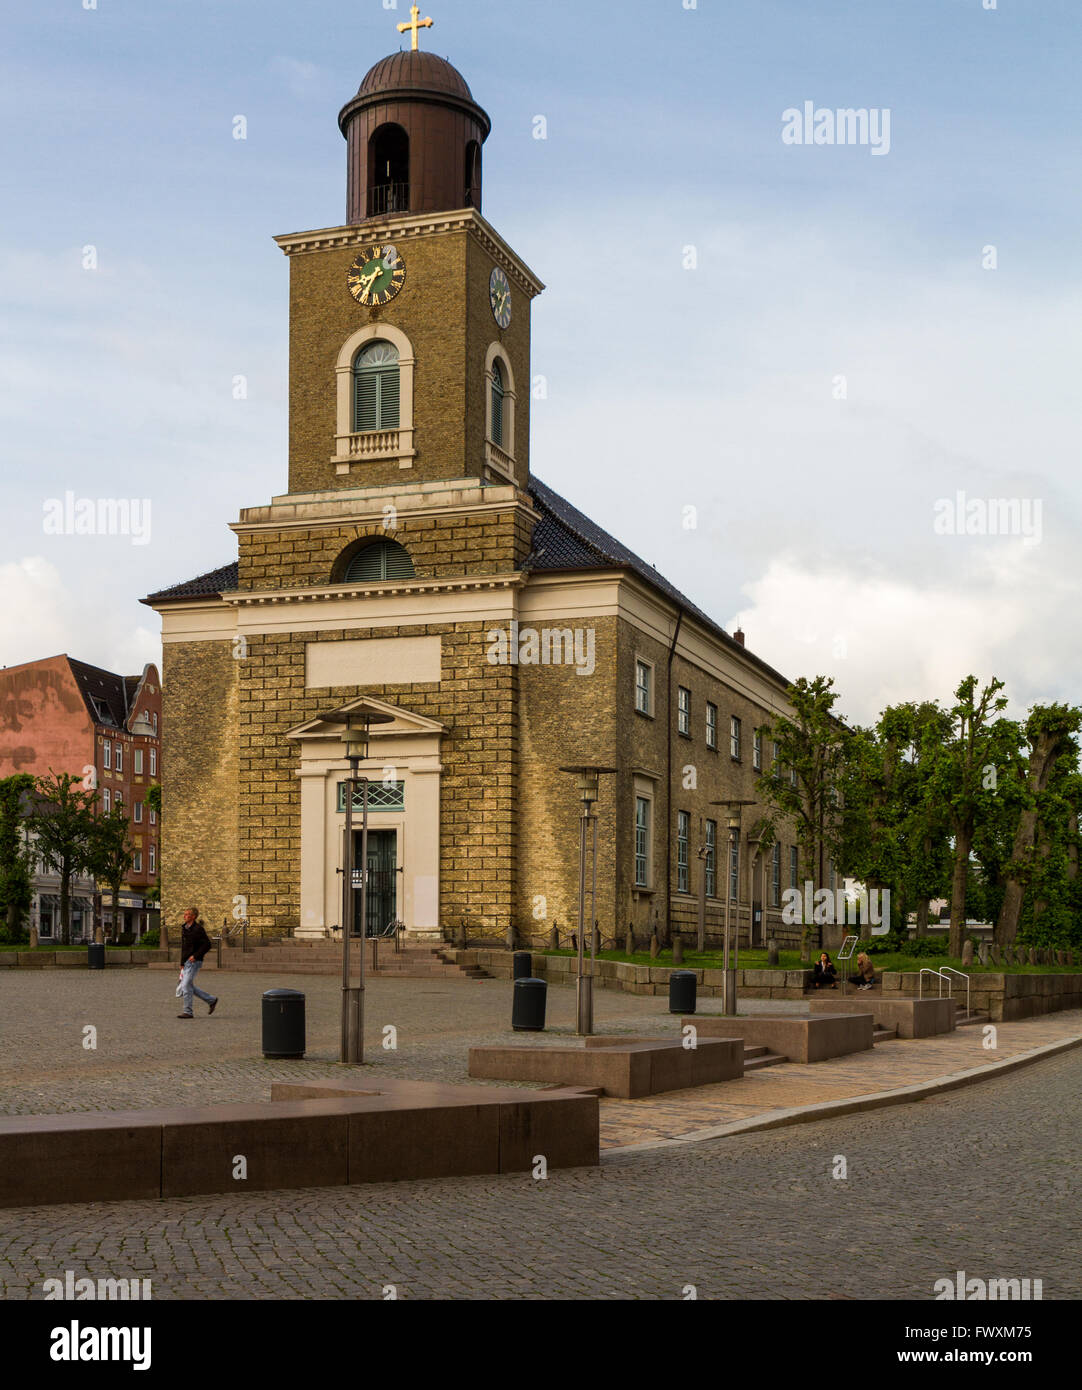 Church in Husum - Stock Image